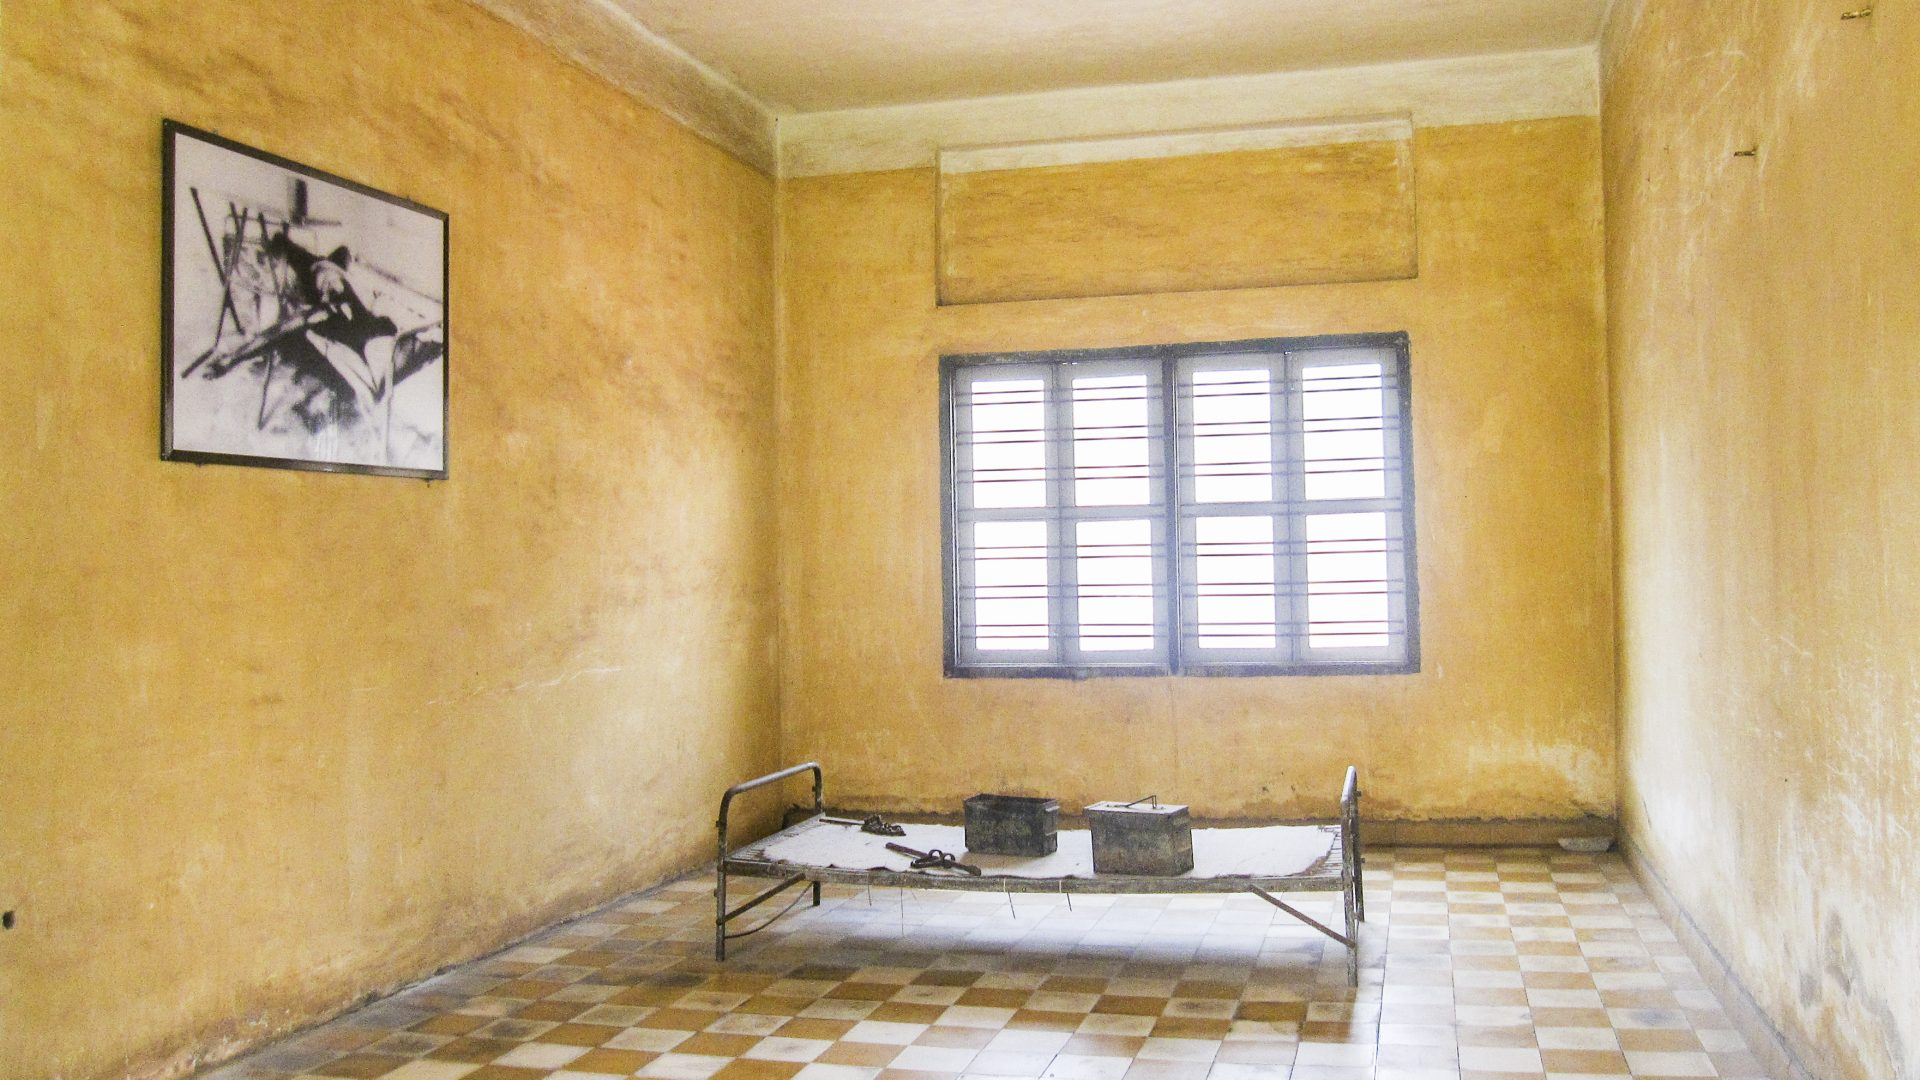 A cell at Cambodia's Tuol Sleng Genocide Museum, formerly the S-21 security prison.